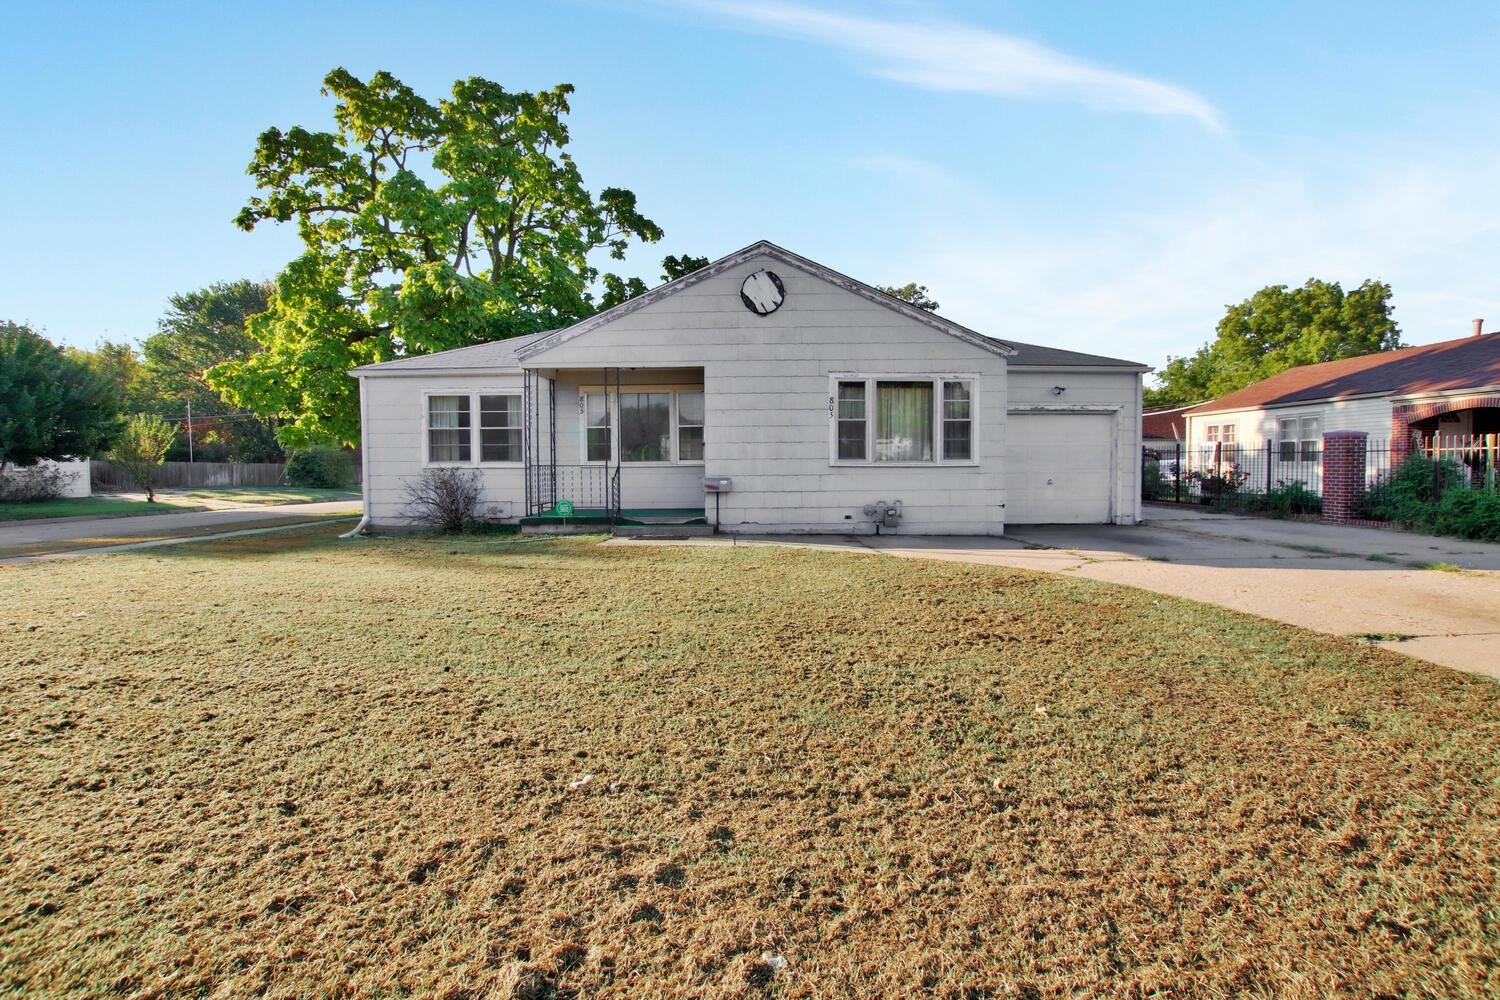 Are you looking for a huge lot (Almost half an acre!) and a man-cave or she-shed? Here it is! With a little TLC and paint this 3 bed, 1 bath house can be made into a perfect home on a huge lot! The house has a one car attached garage and a HUGE detached garage (30' x 40') with 3 doors but could fit many more.The garage is insulated, has a heater and 220 wiring.Chain link fence around the entire back yard. Nice patio to entertain or enjoy evening barbecues.